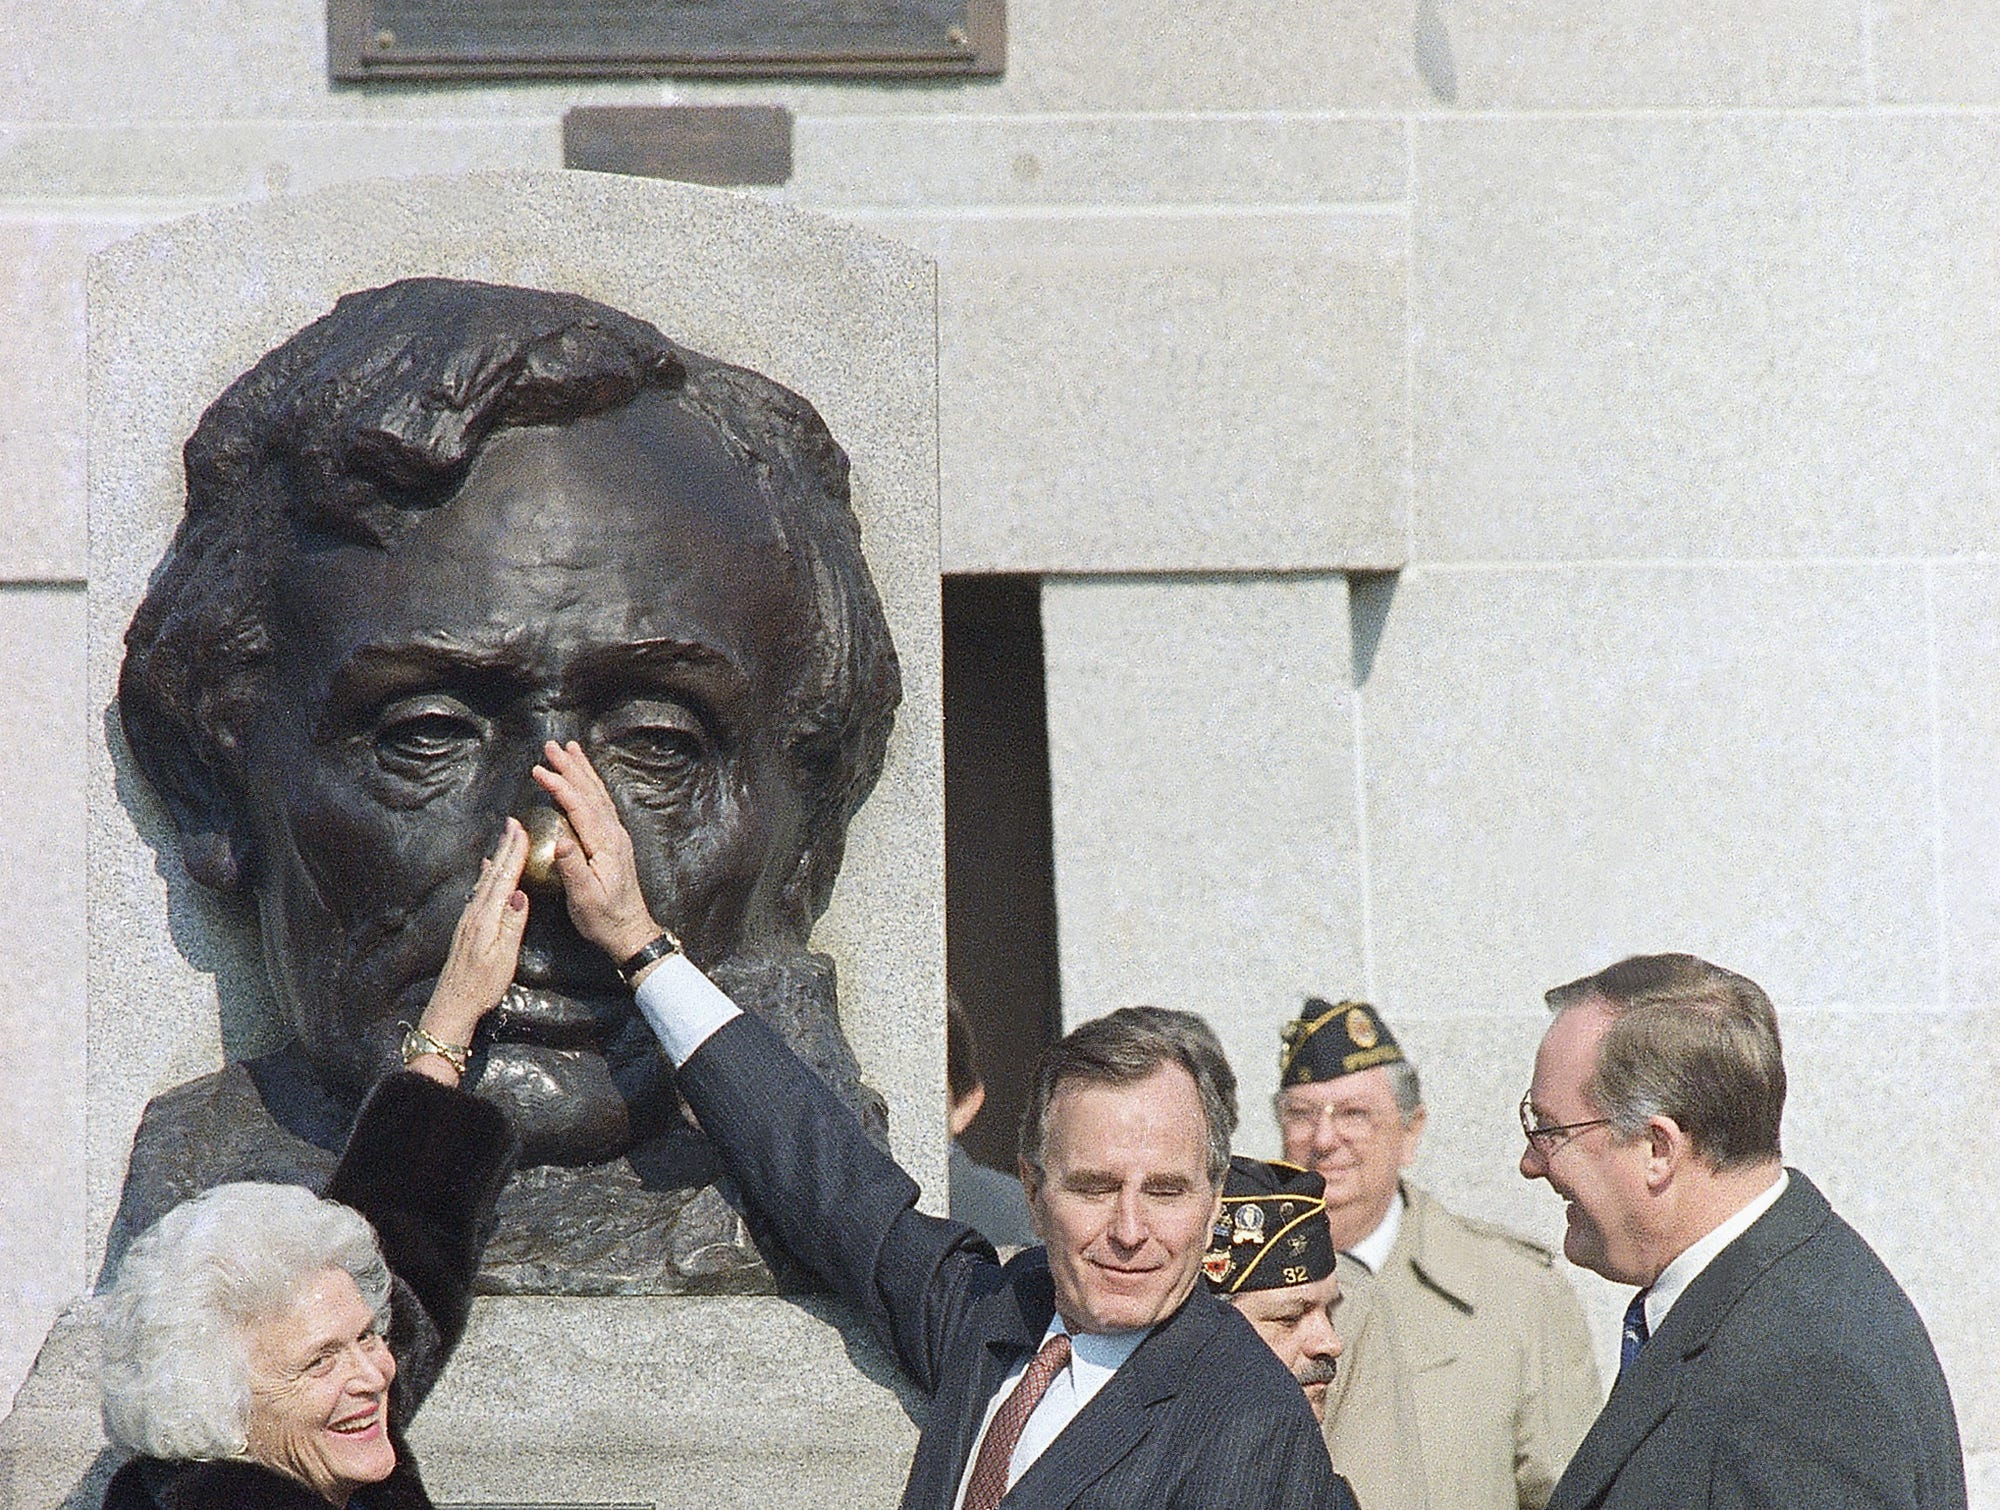 U.S. Vice President George H. Bush, right, and his wife Barbara, left, rubs the nose of the statue of Abraham Lincoln for good luck after participating in wreath-laying ceremonies at Lincoln's Tomb in Springfield, Ill., Feb. 12, 1987.  (AP Photo/Seth Perlman)